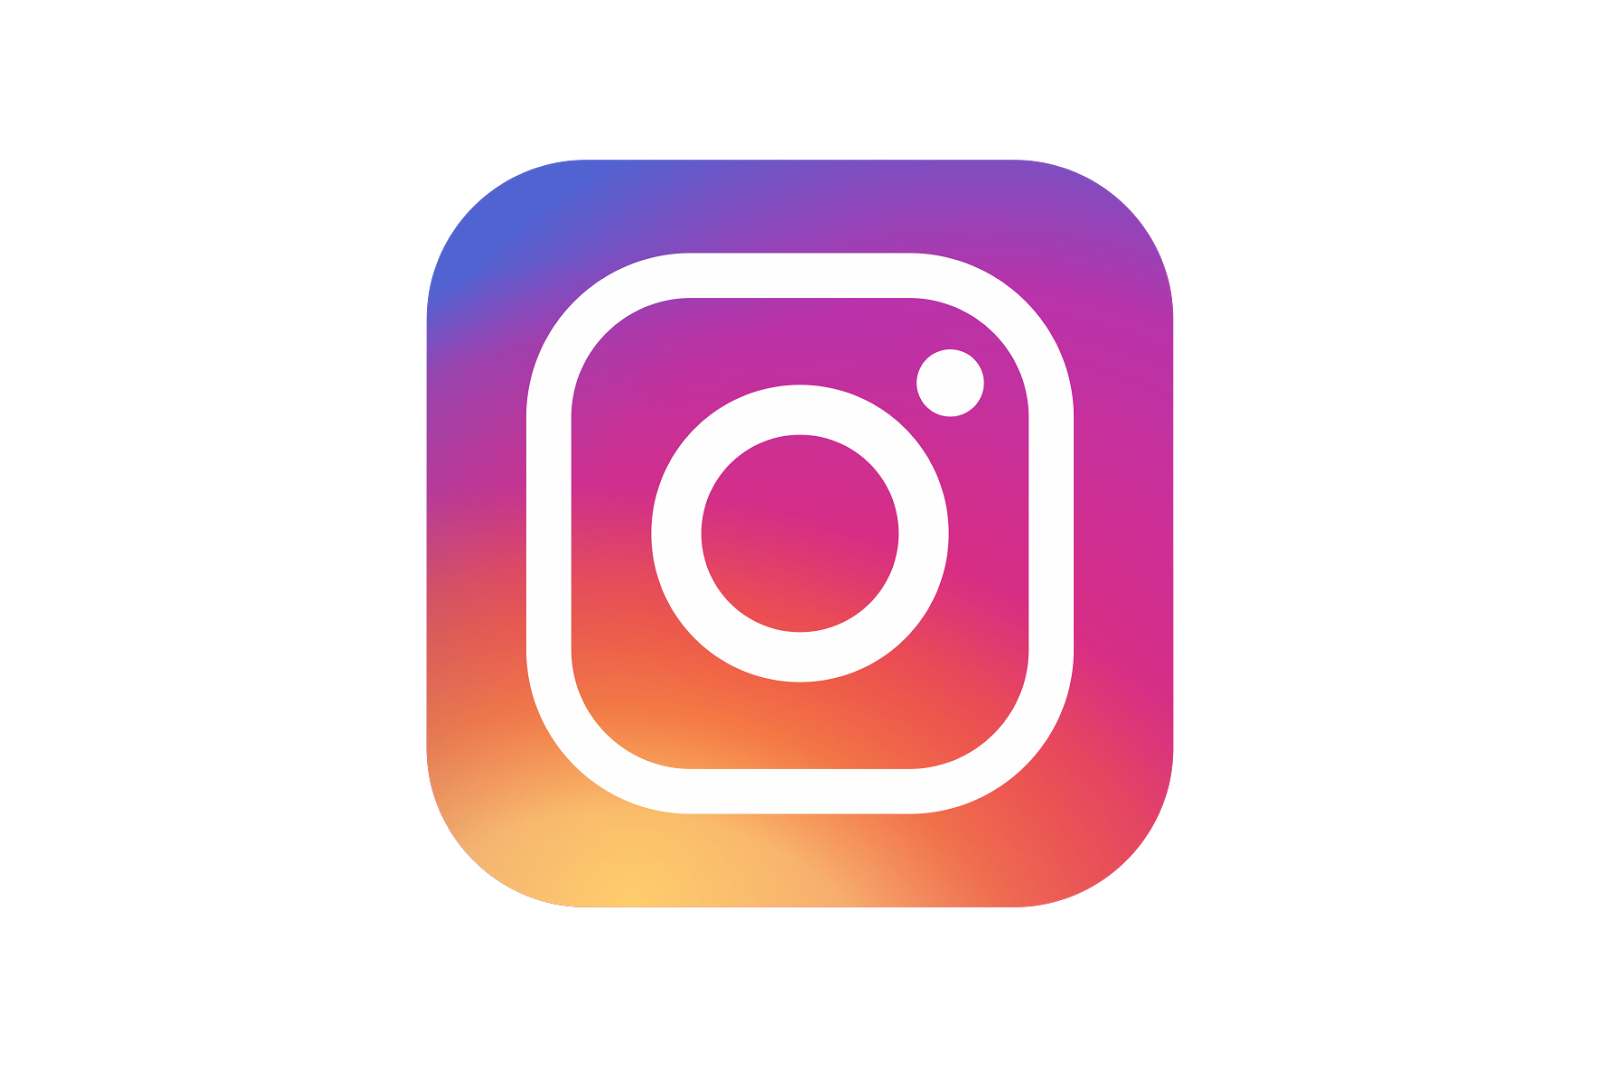 Instagram new logo png. Clipart photos transparentpng